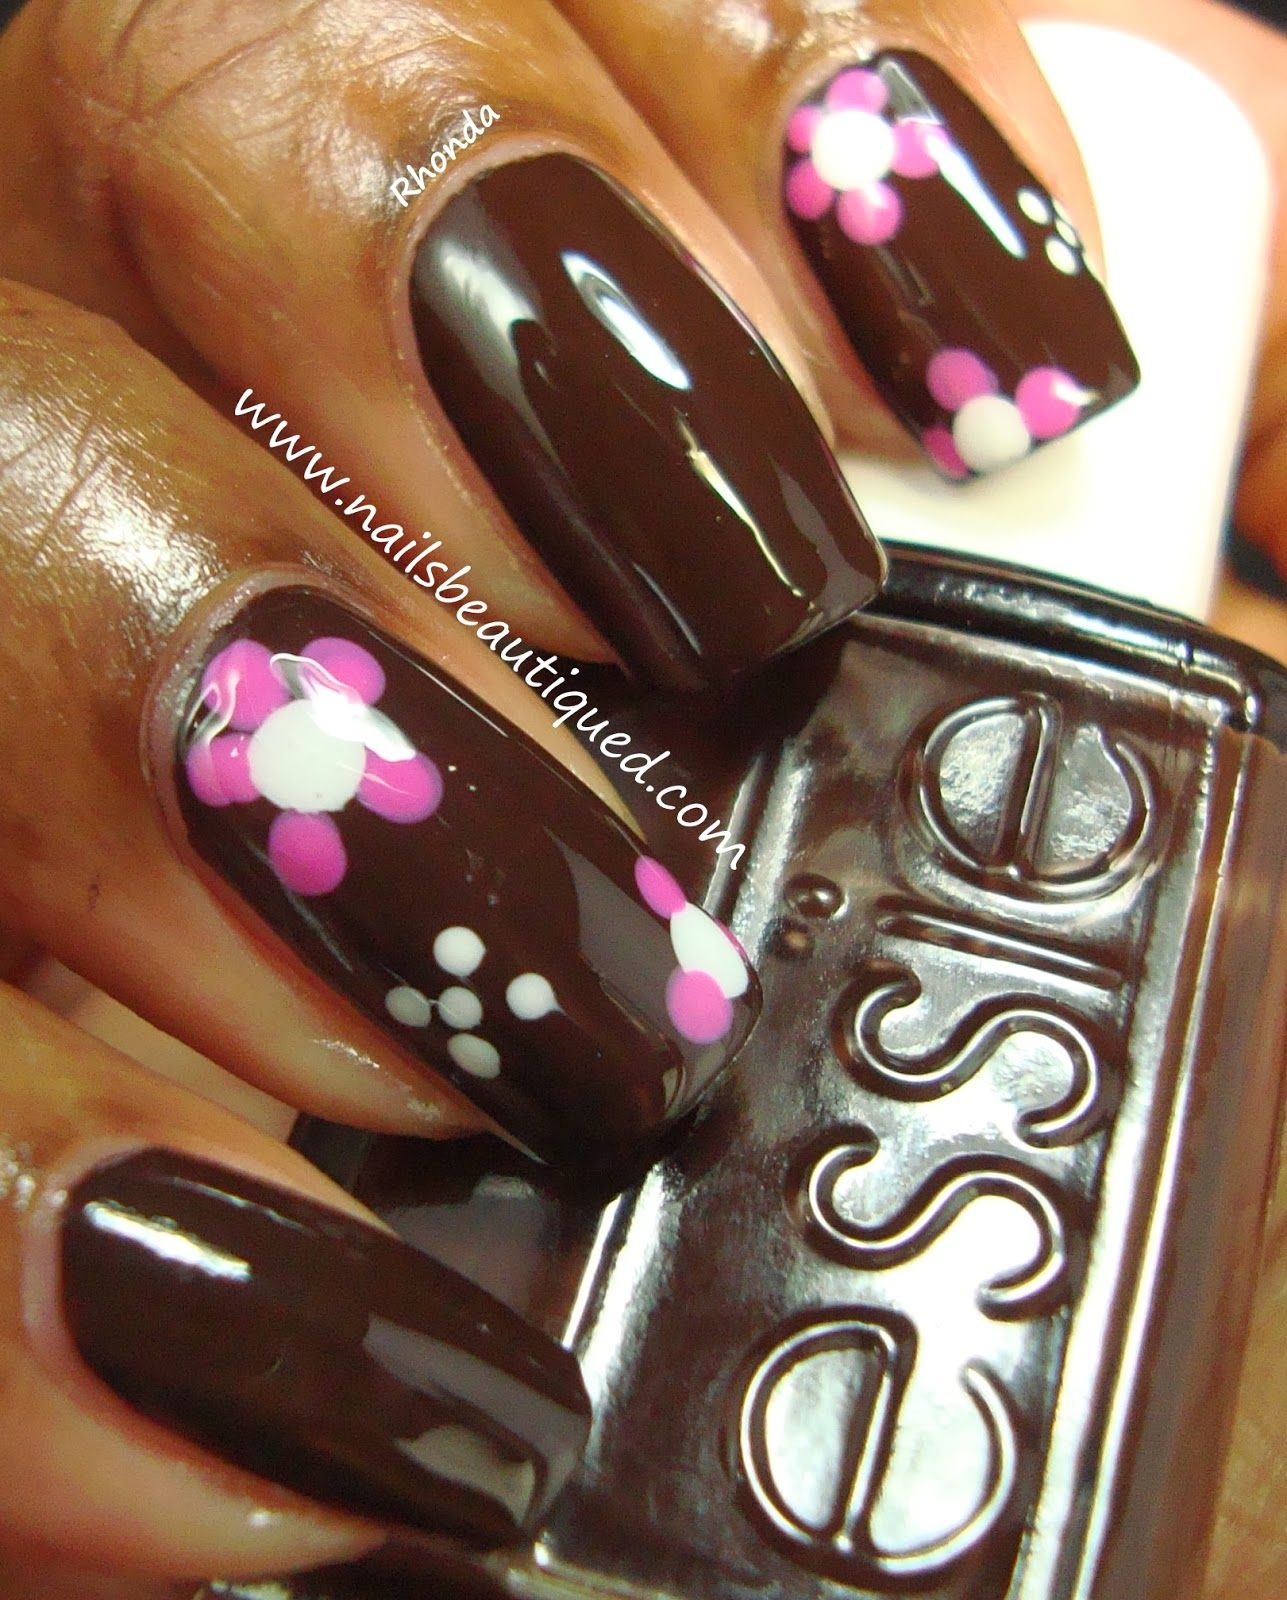 Essie Little Brown Dress with pink and white petal flowers | Nails ...